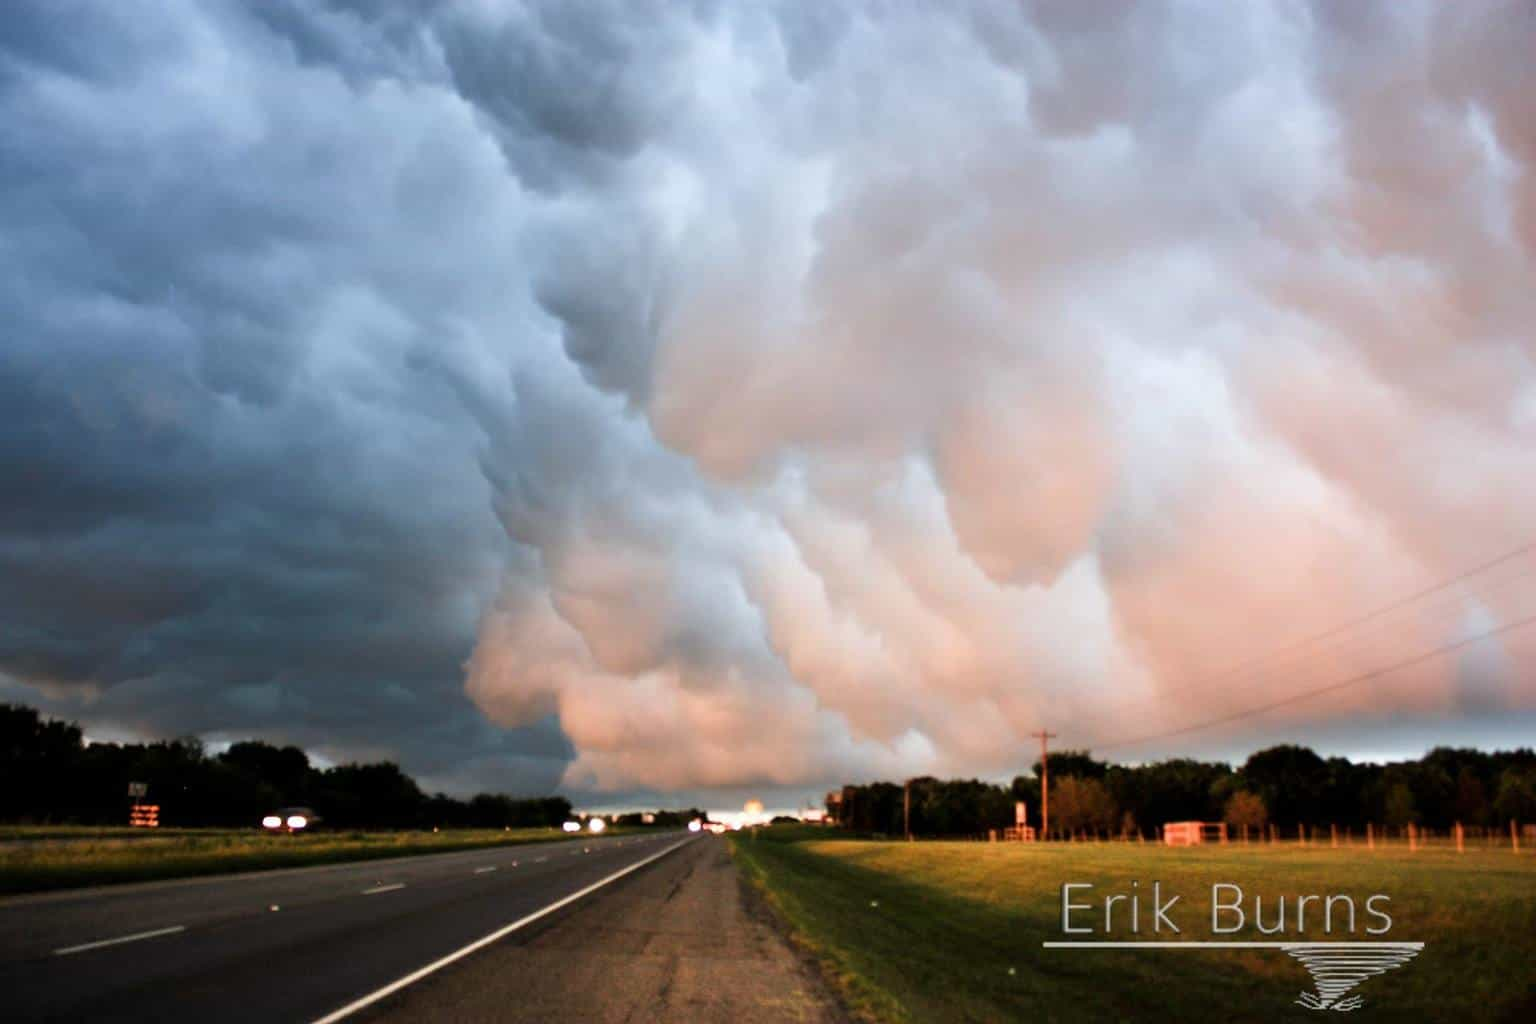 Sometimes the best photo ops come after the darkness of the beast. Backside of the gust front. April 29, 2016 Whitesboro, TX.